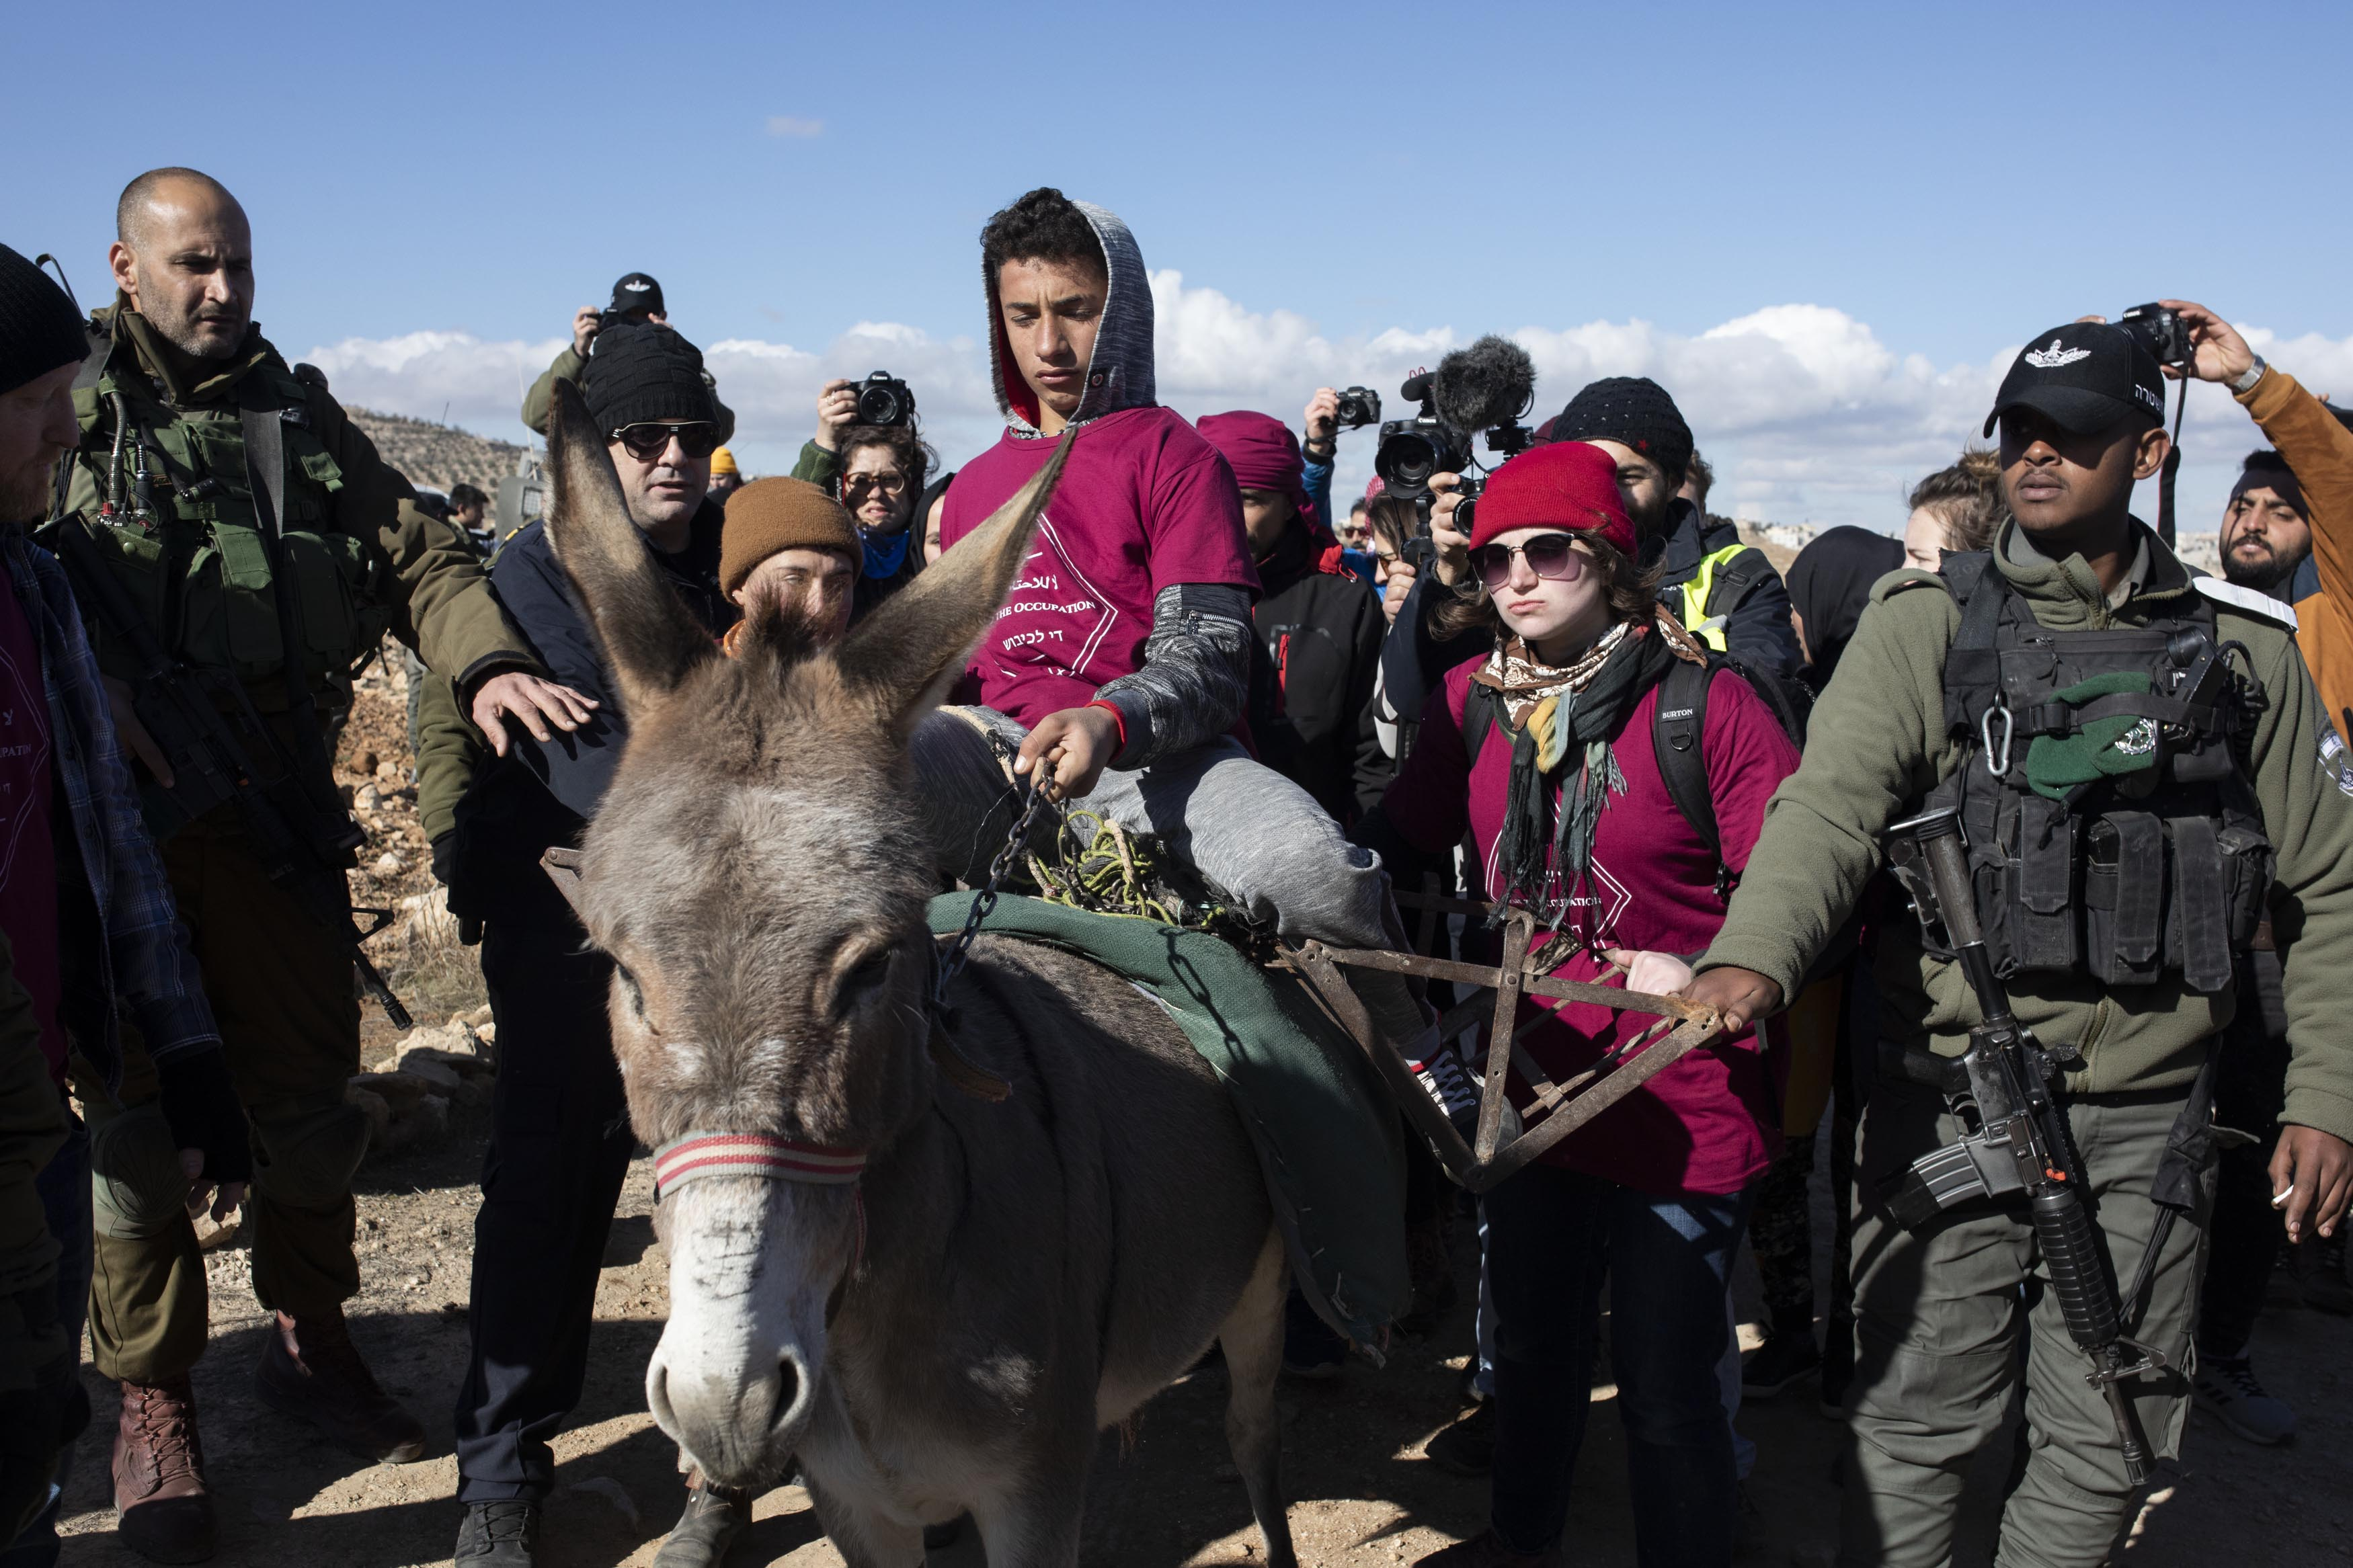 Palestinian, Israeli, and international activists take part in a direct action to restore access to the Ein Albeida spring, South Hebron Hills, January 3, 2020. (Oren Ziv/Activestills.org)